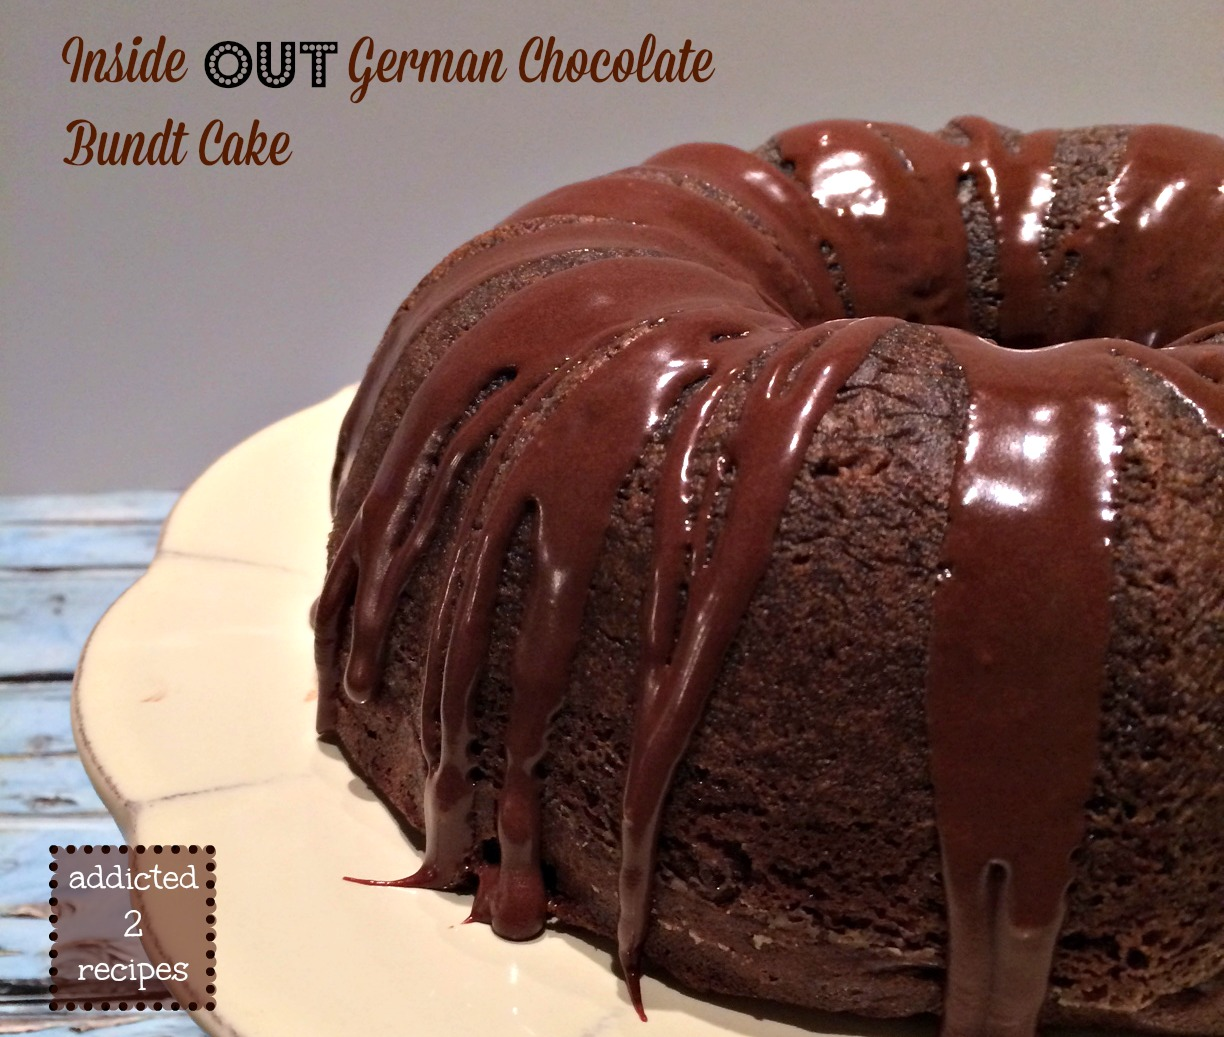 Inside Out German Chocolate Bundt Cake Recipe